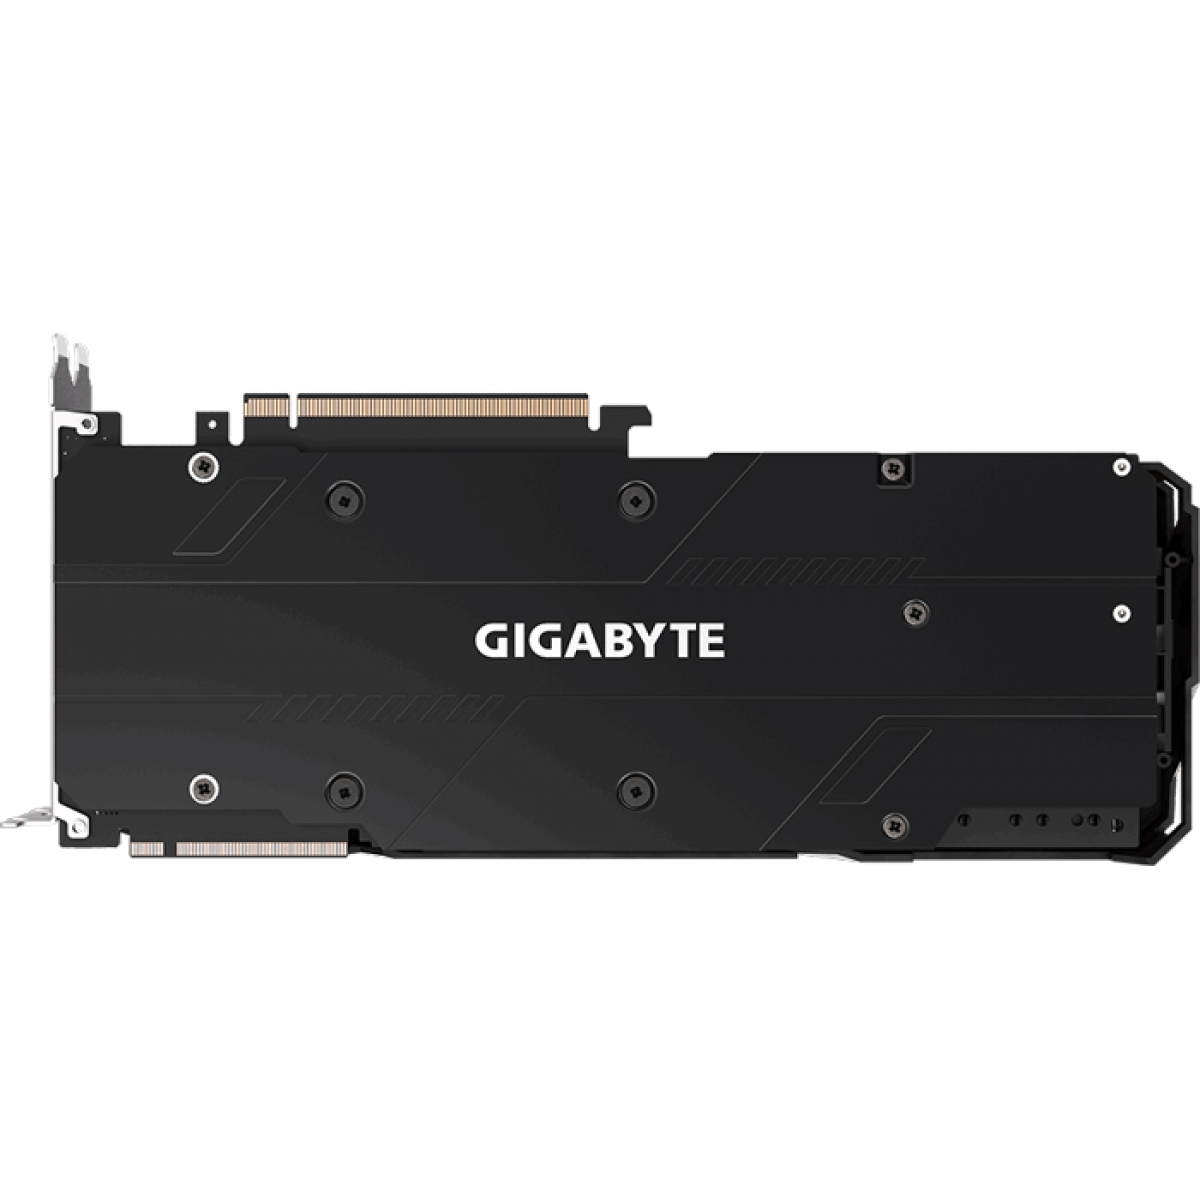 Placa De Vídeo Gigabyte Geforce RTX 2080 Ti Windforce OC, 11GB GDDR6, 352Bit, GV-N208TWF3OC-11GC